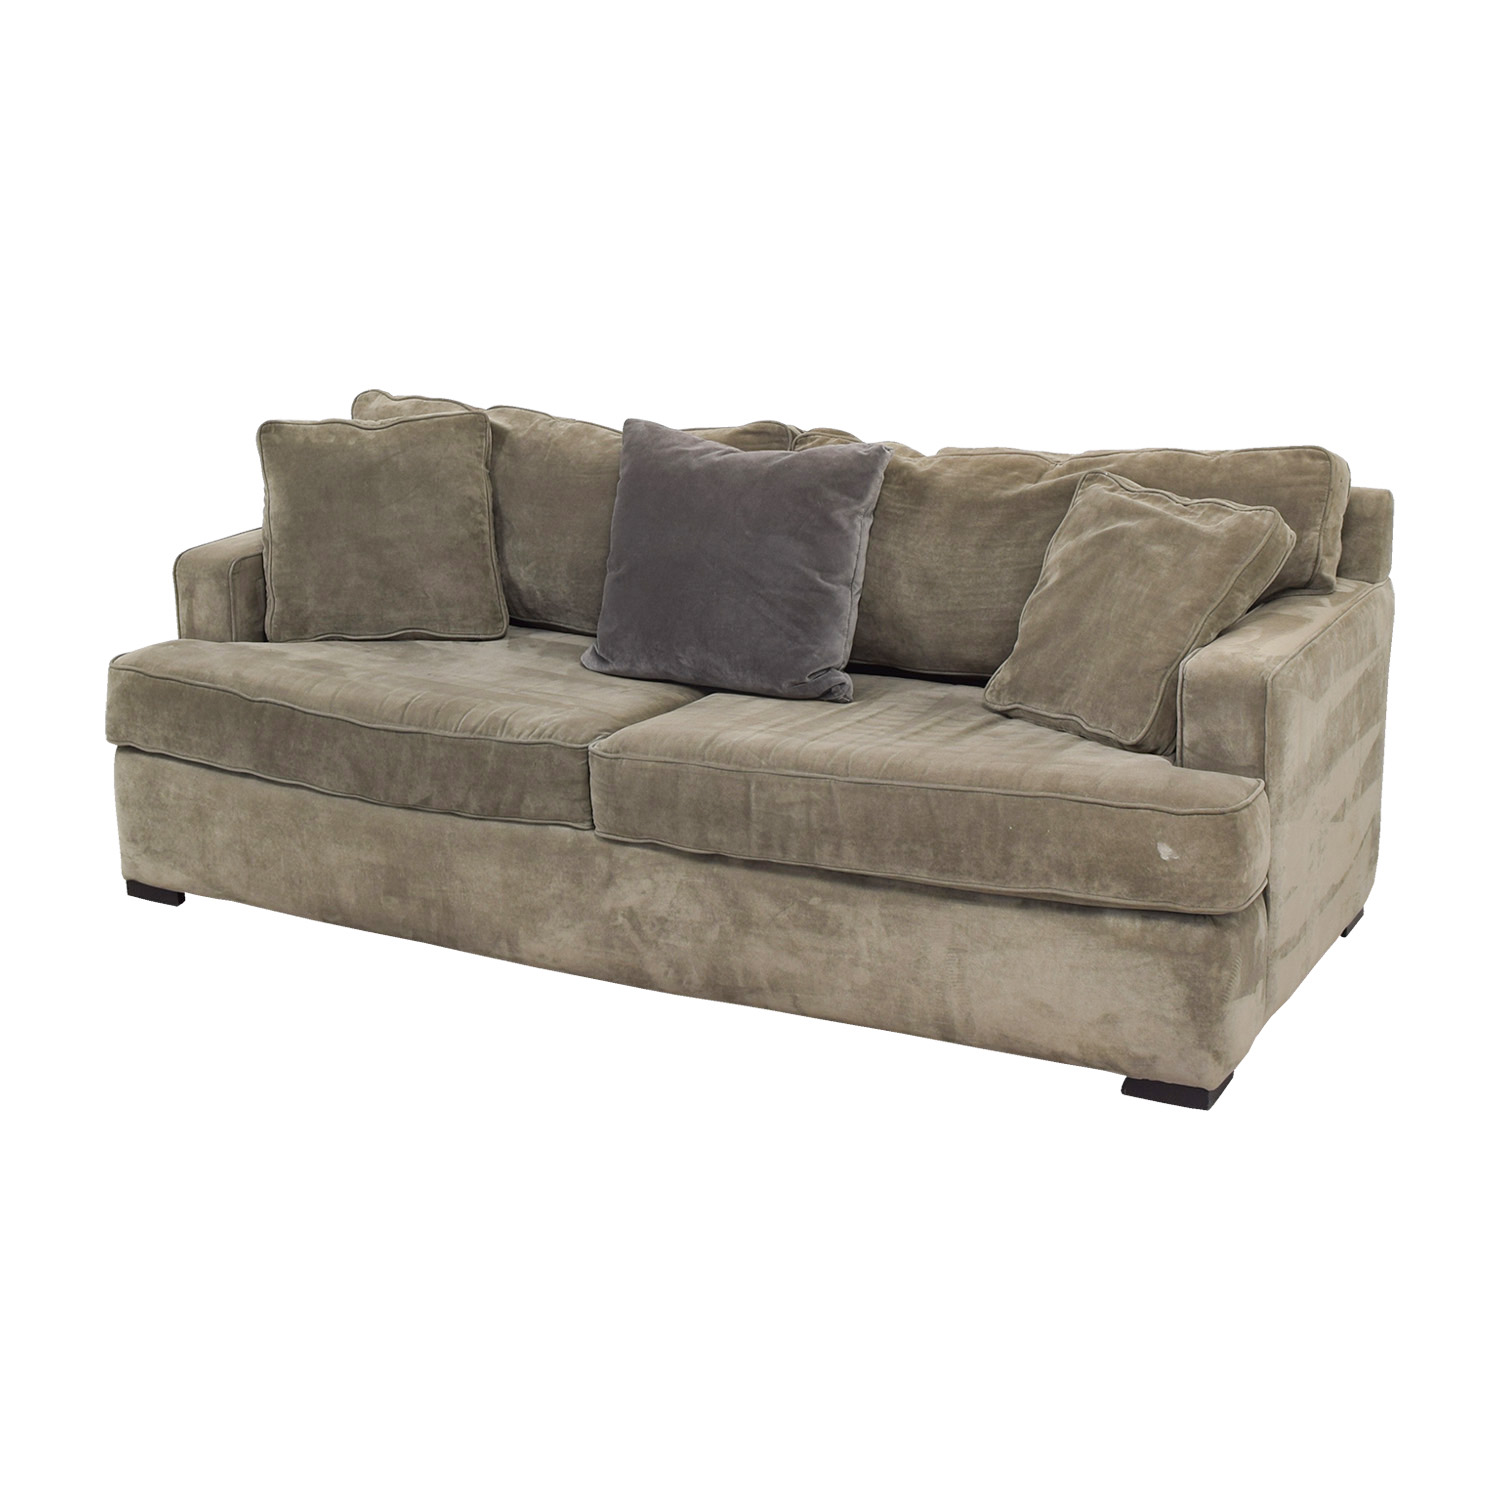 Abc sofa sofas couches and loveseats for your nyc for Sofas in nyc